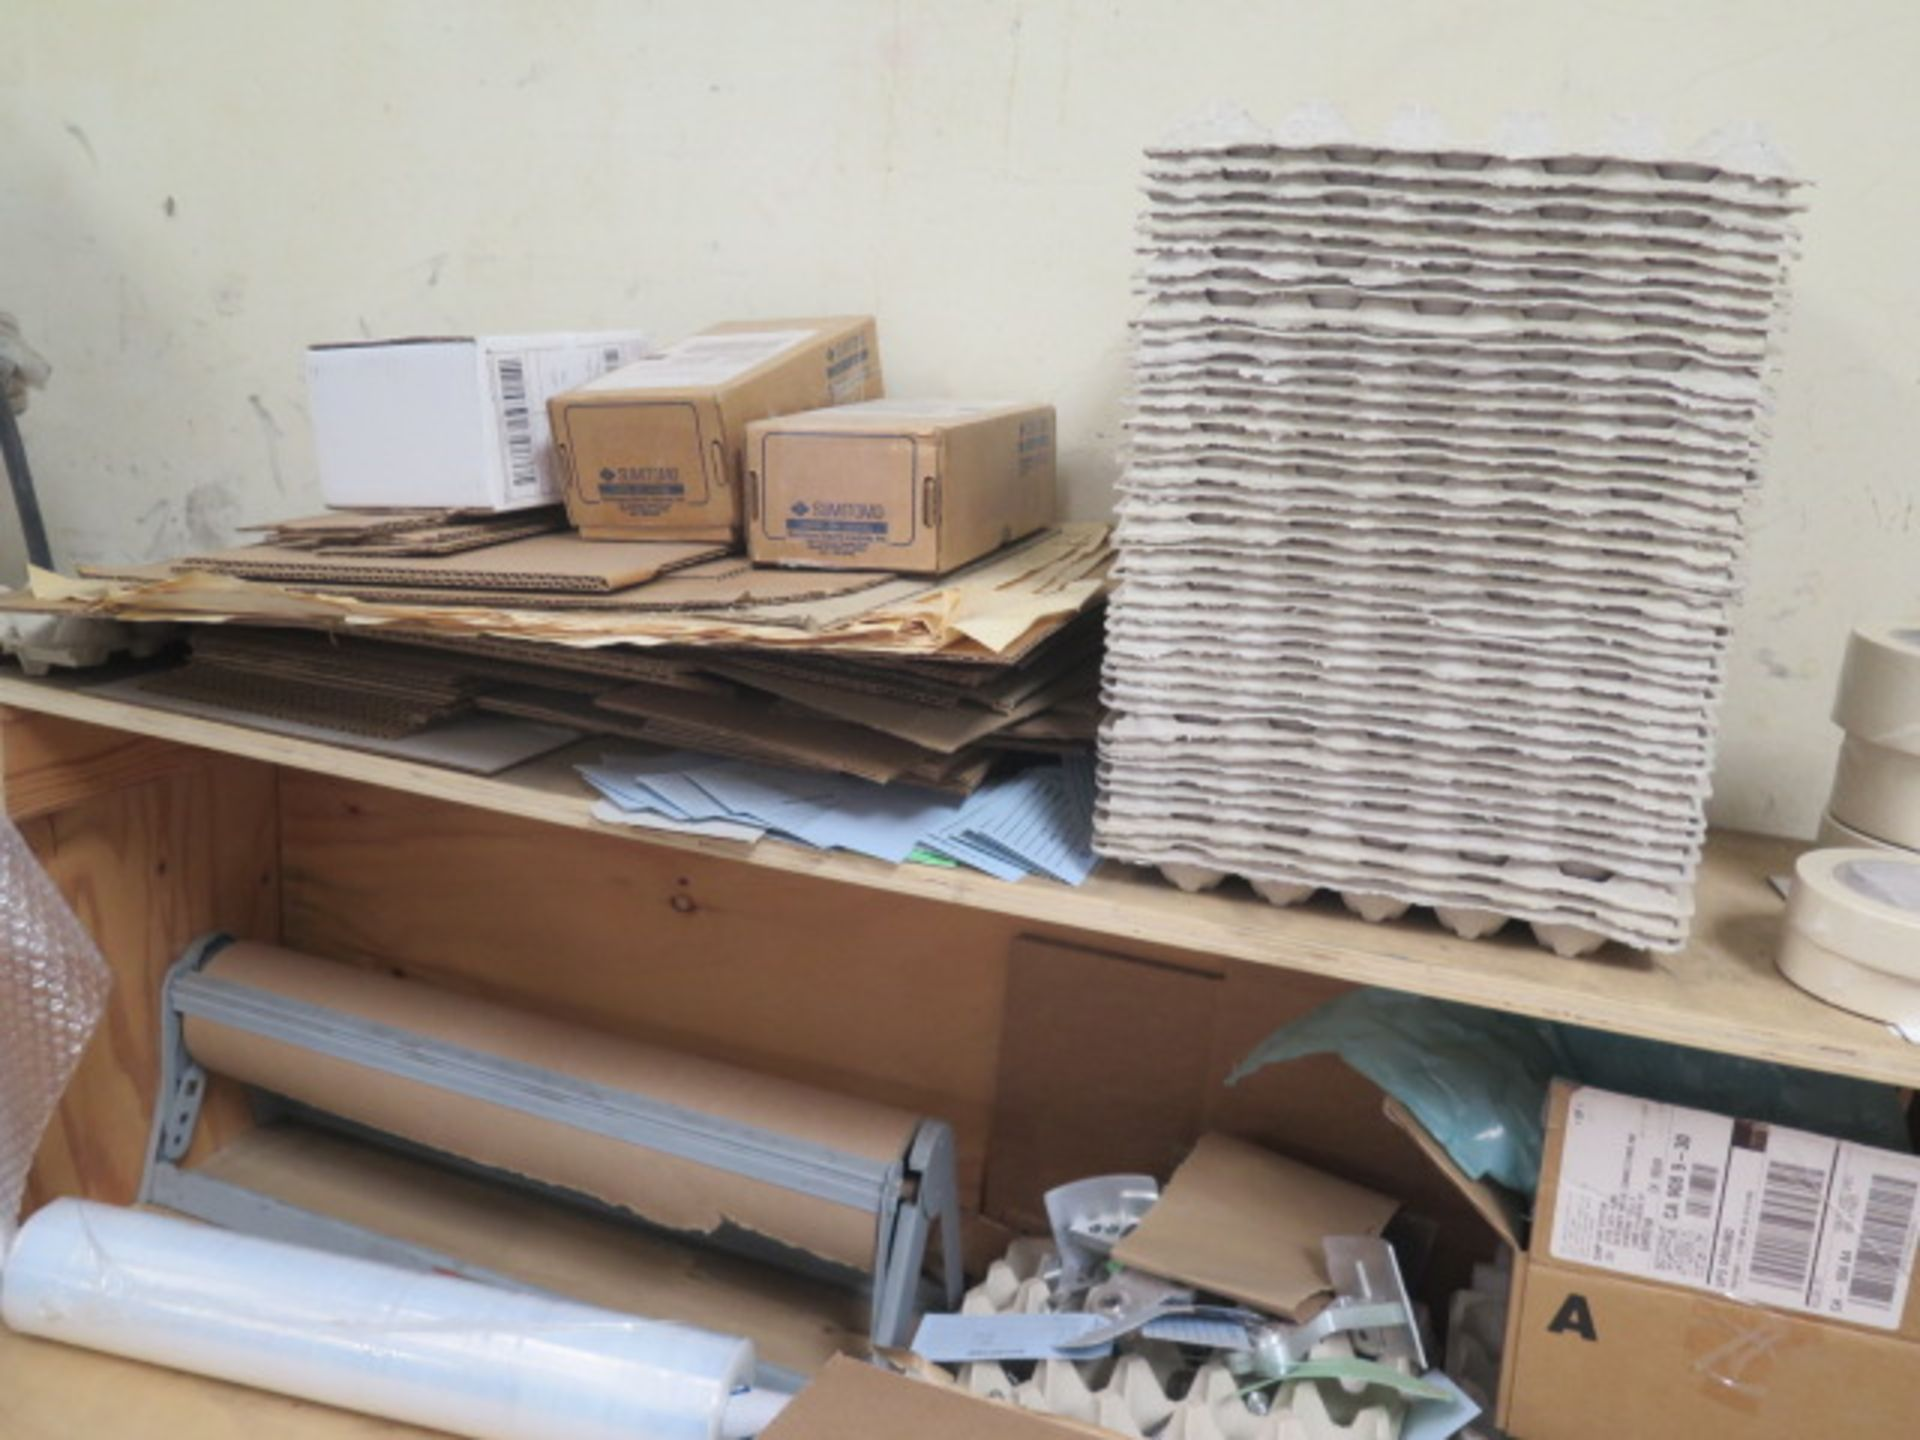 Shipping Supplies and Table (SOLD AS-IS - NO WARRANTY) - Image 4 of 5